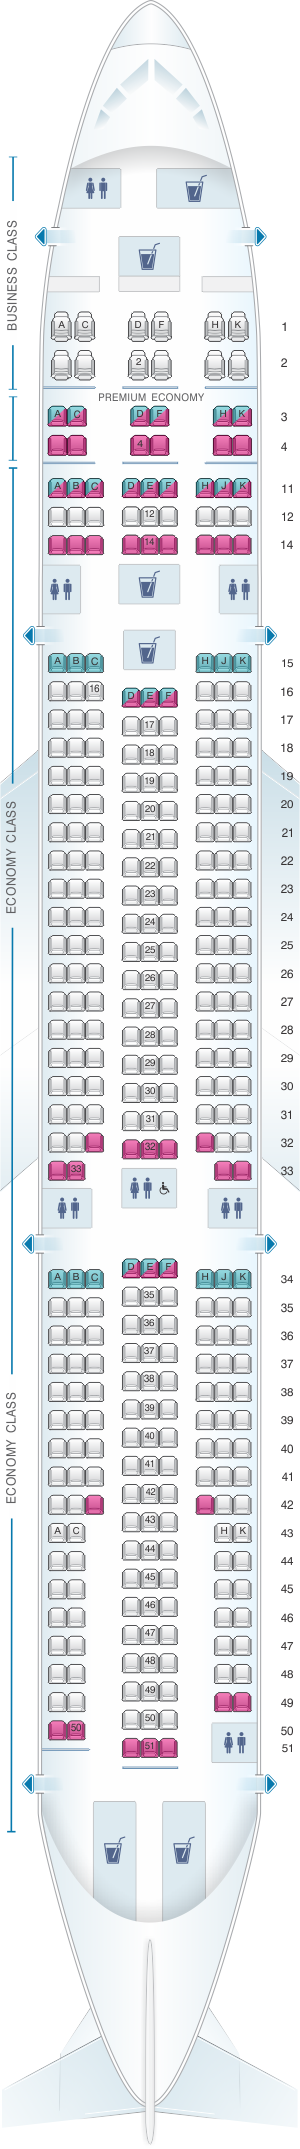 Seat map for Corsair Airbus A330 300